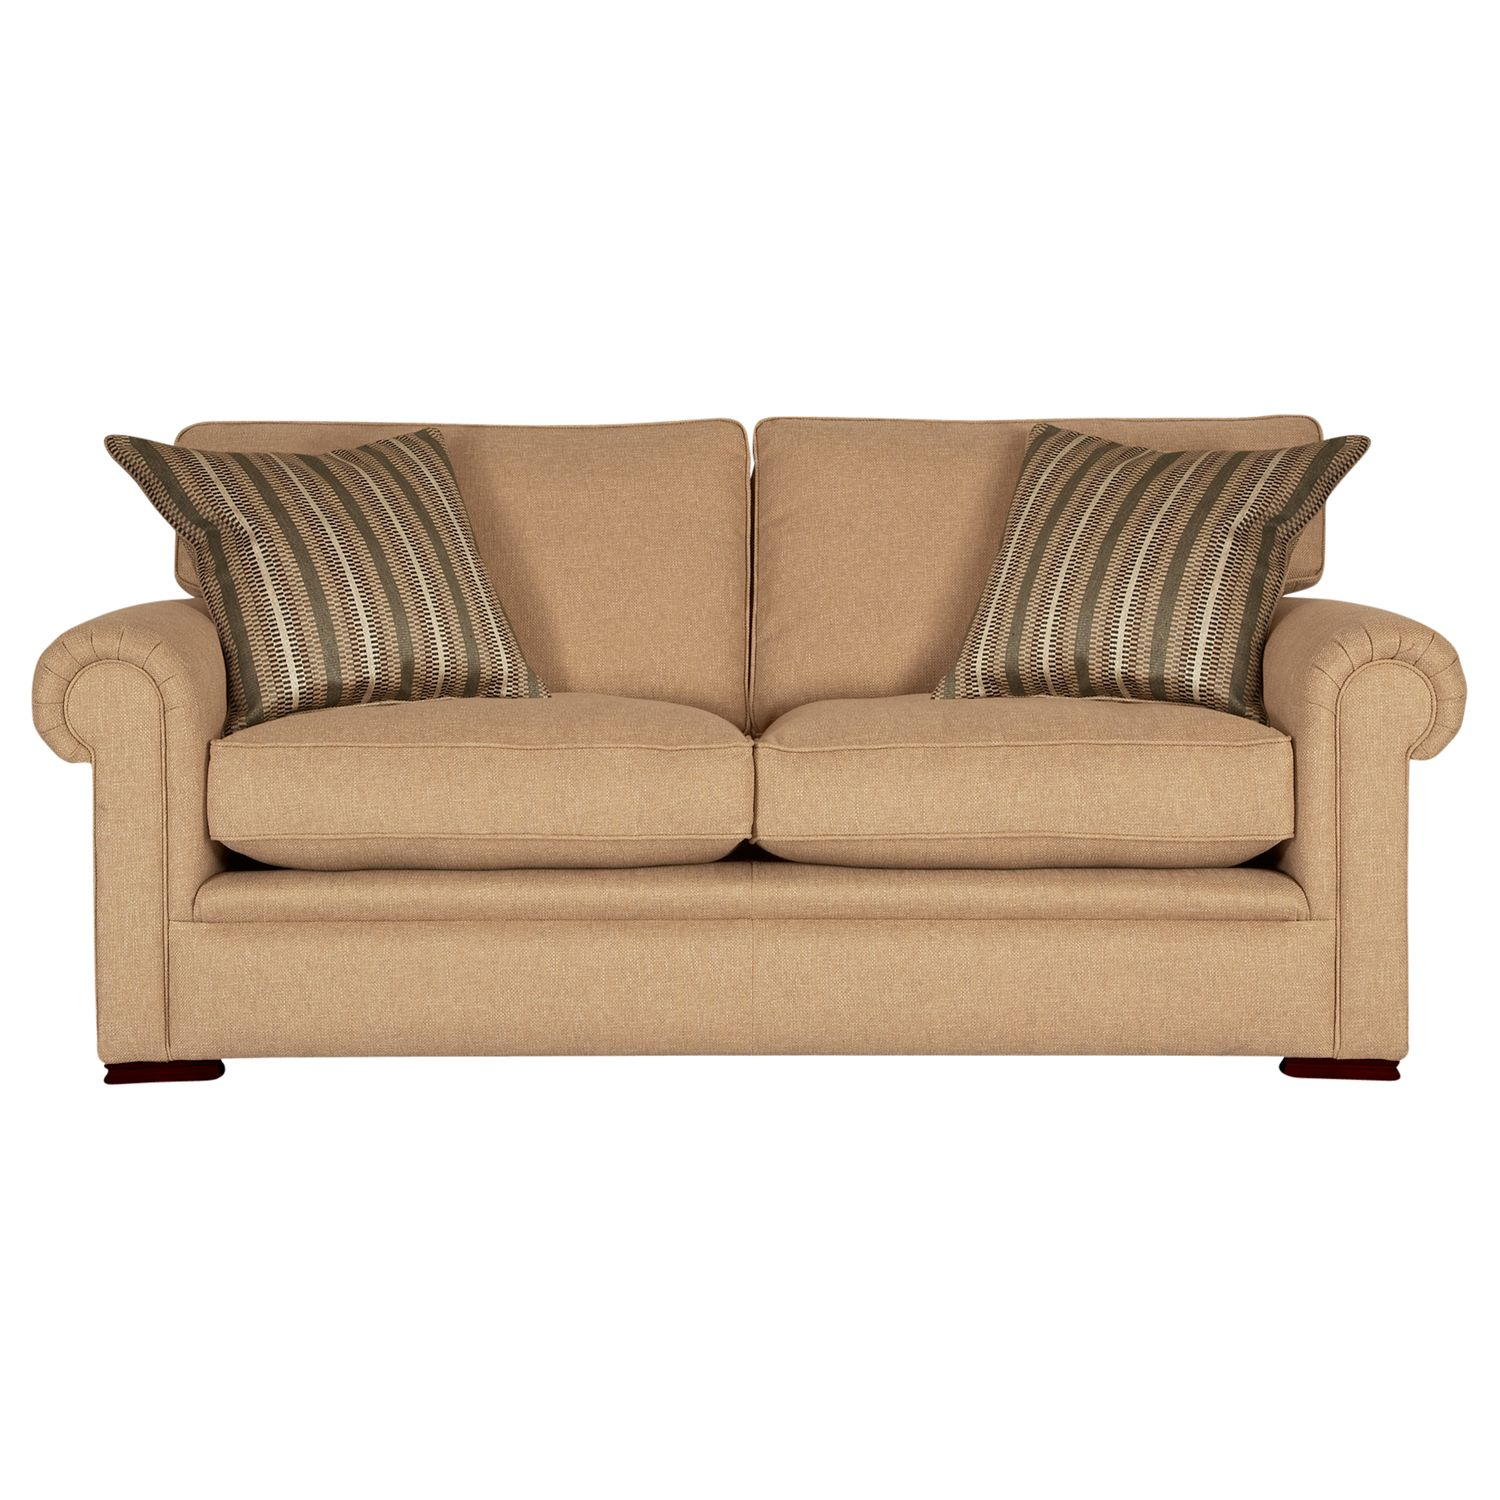 Buy Cheap John Lewis Sofa Compare Sofas Prices For Best